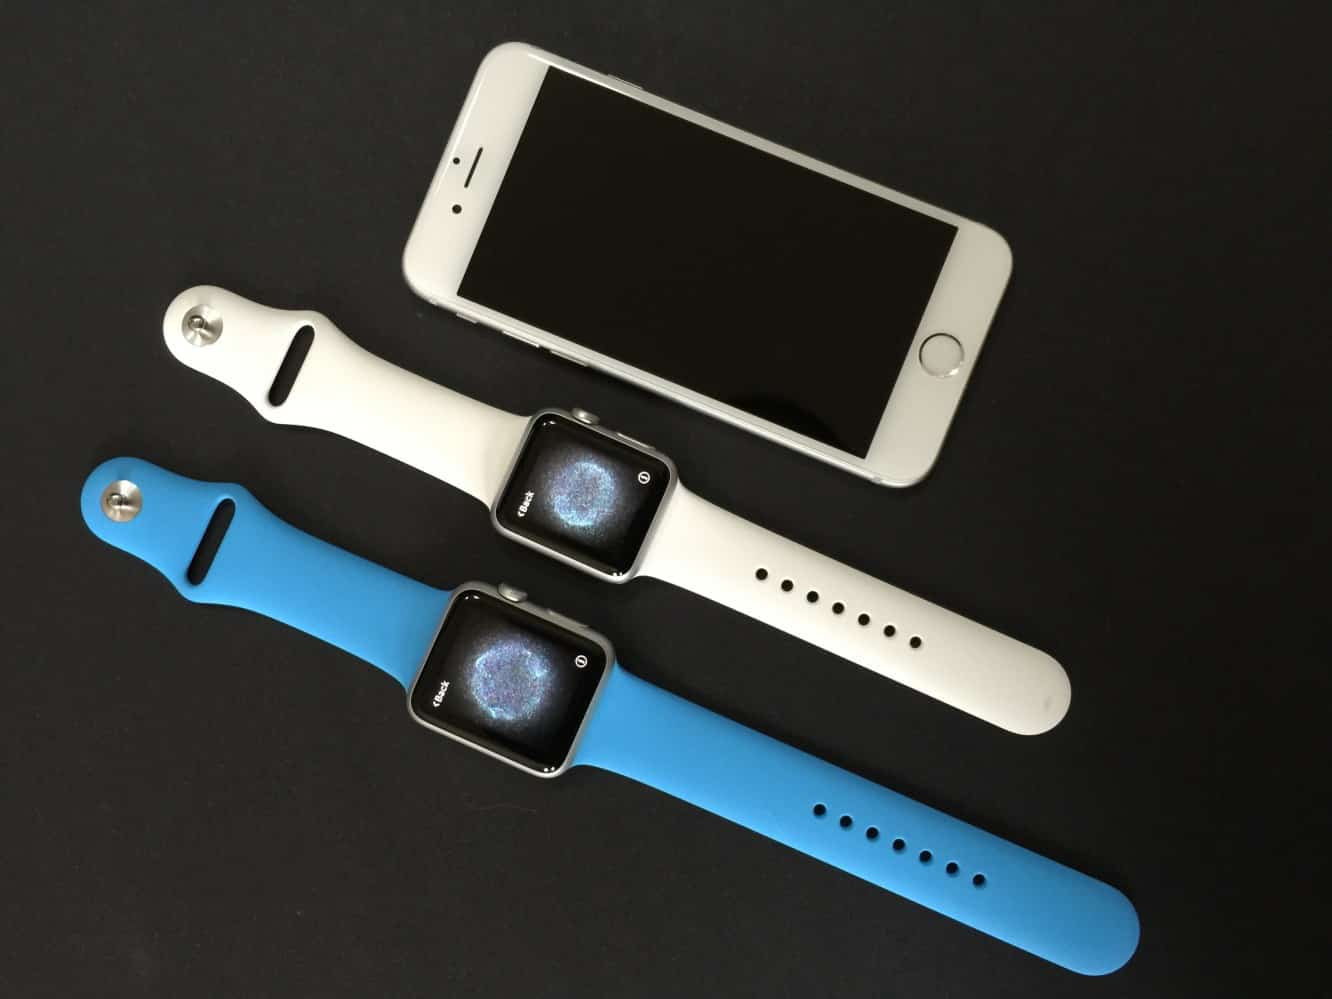 Apple Watch unboxing gallery posted